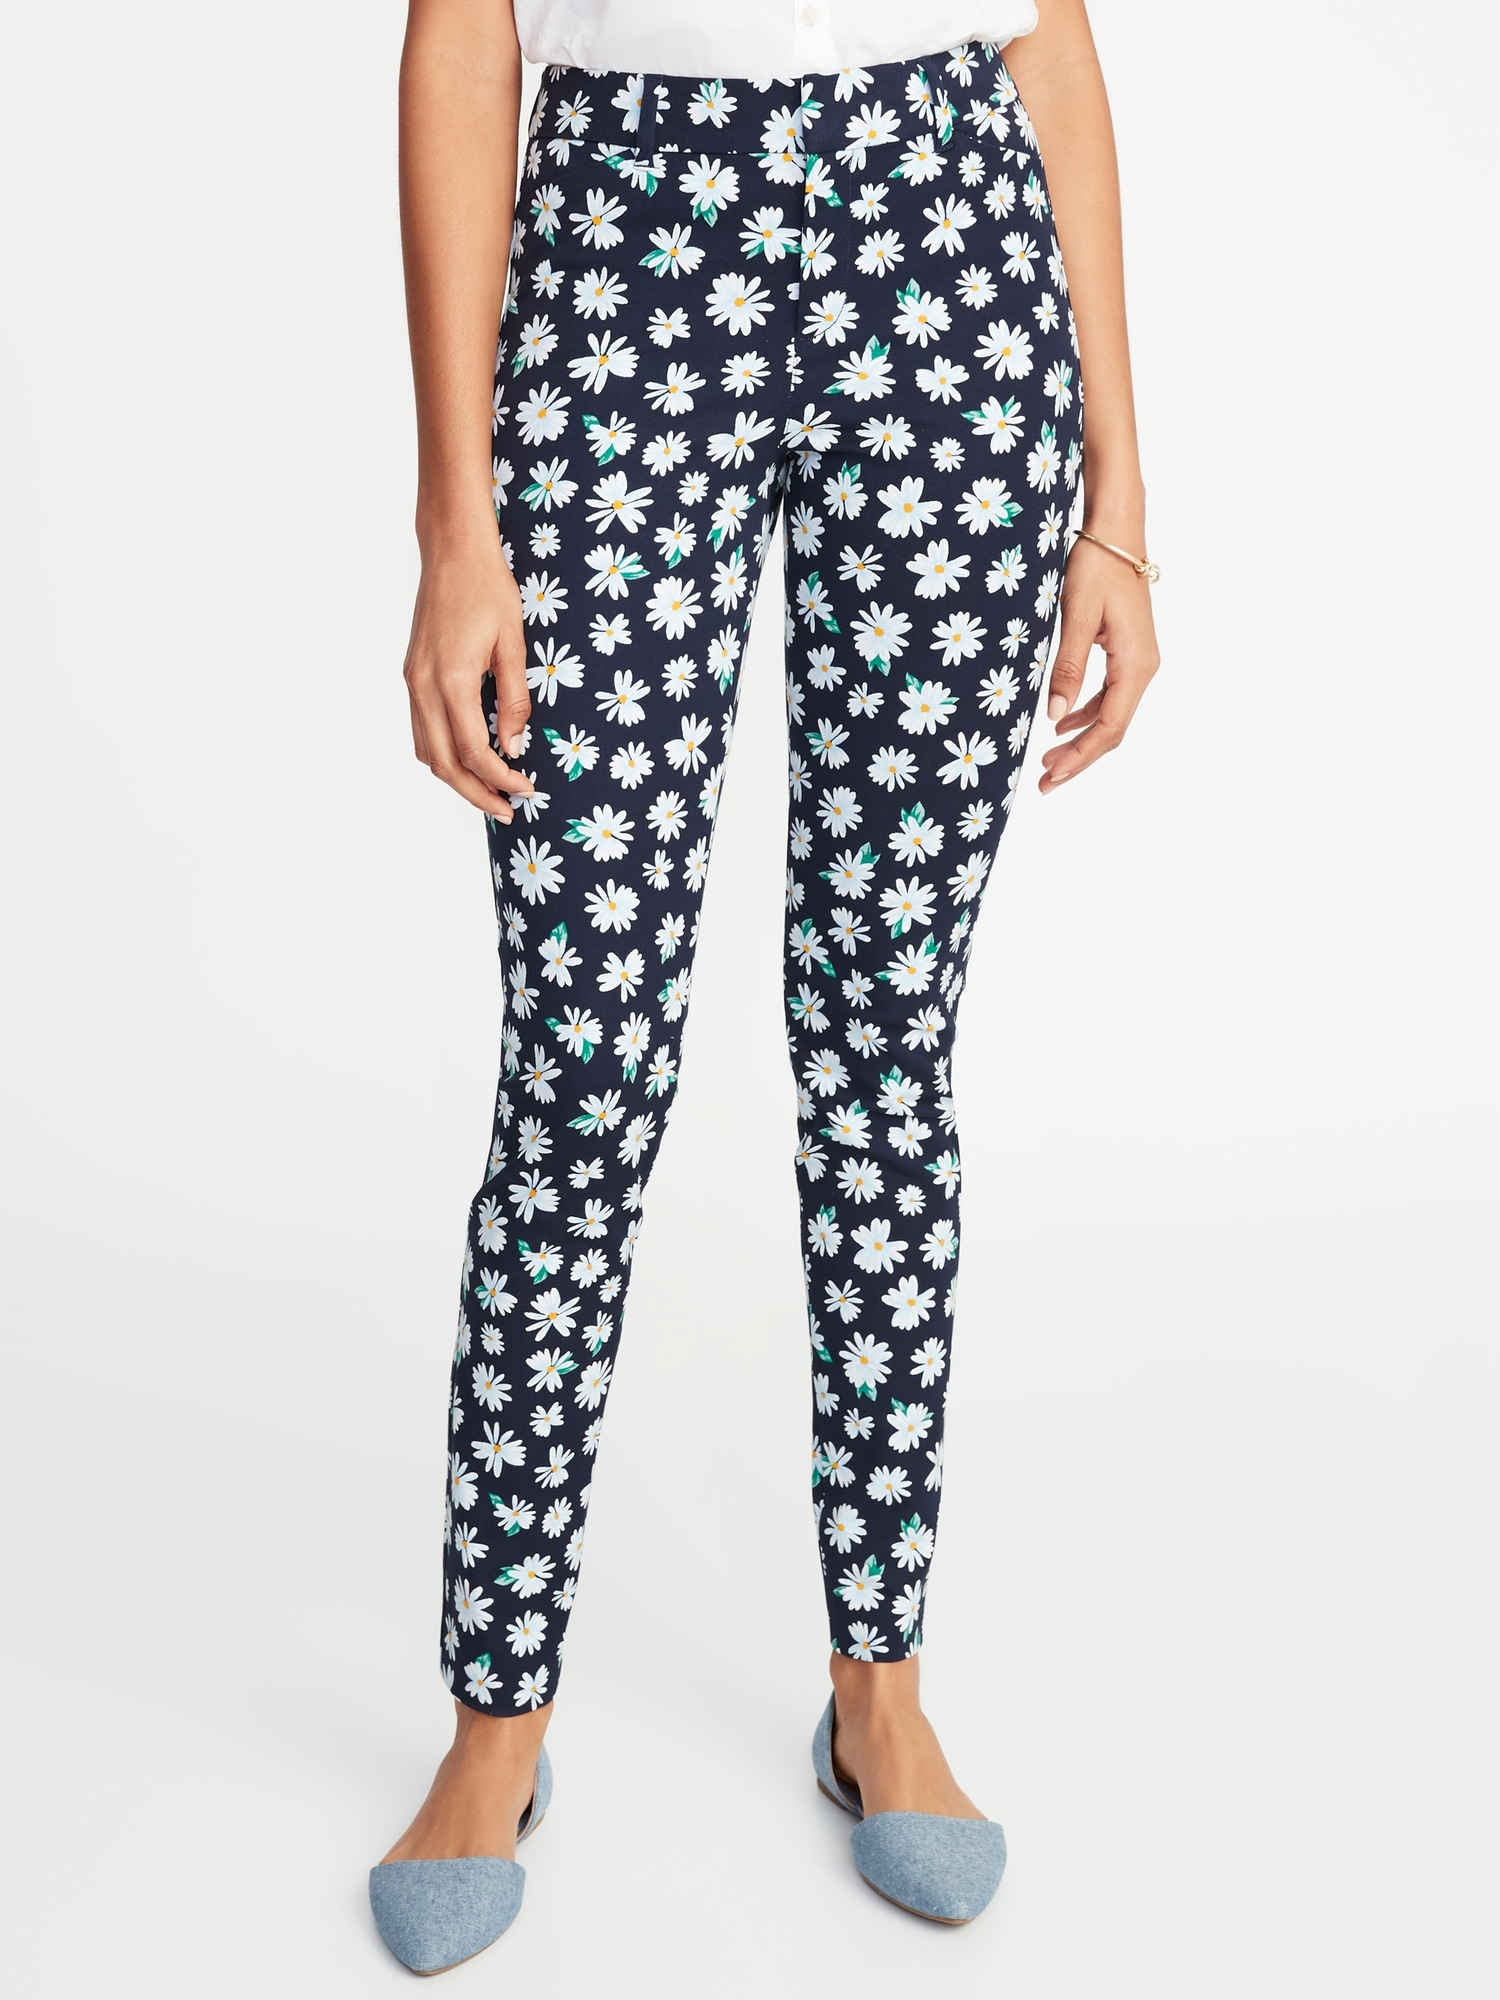 521706424a0860 Mid-Rise Printed Pixie Full-Length Pants for Women | Old Navy